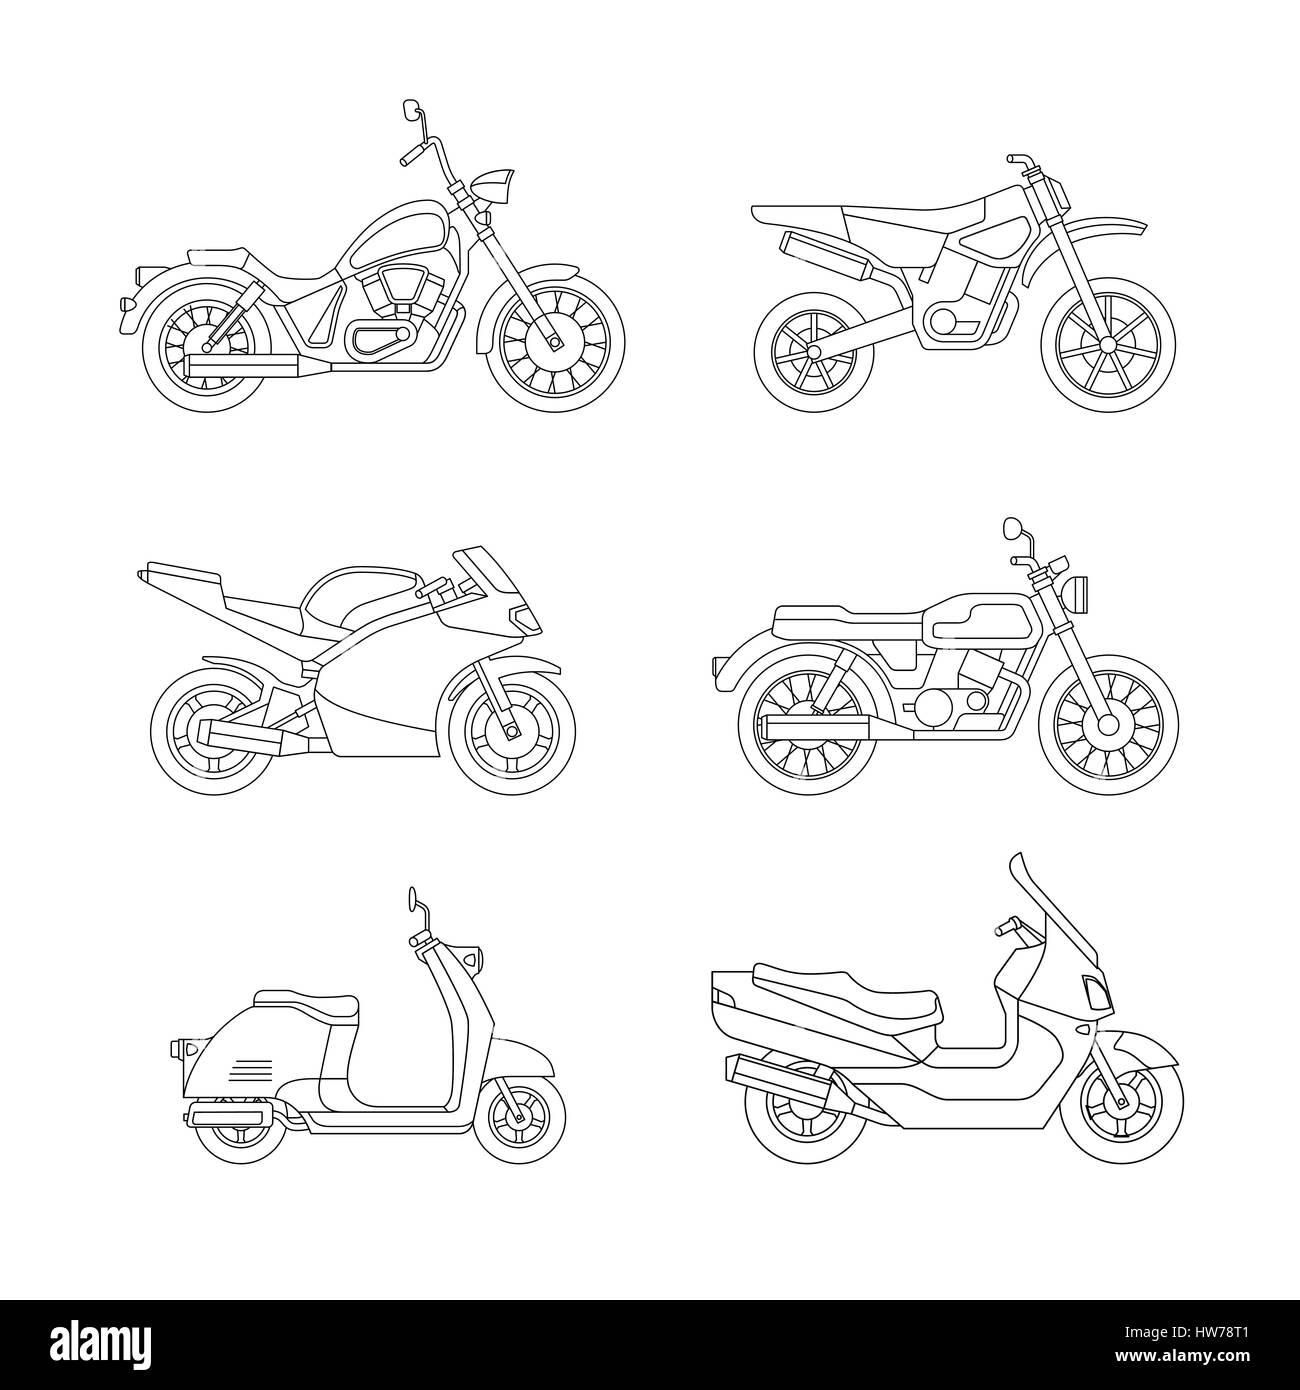 Motorcycle and scooter line icons set. - Stock Image